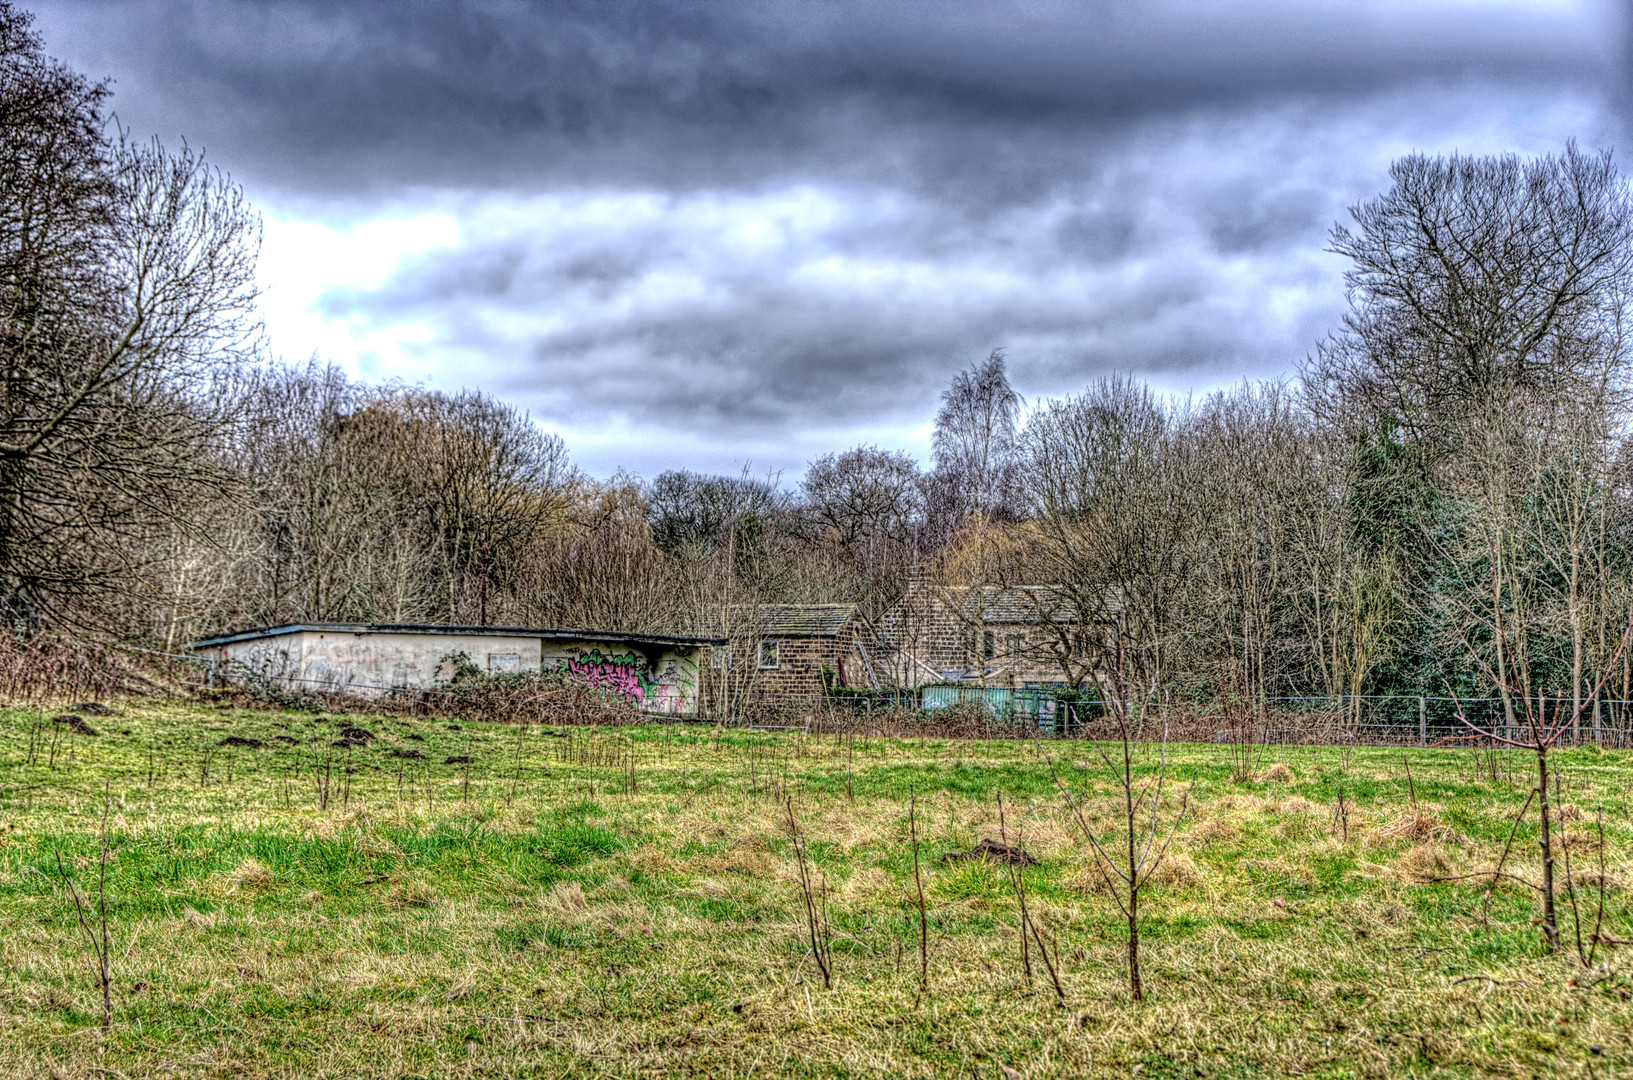 Derelict and unloved